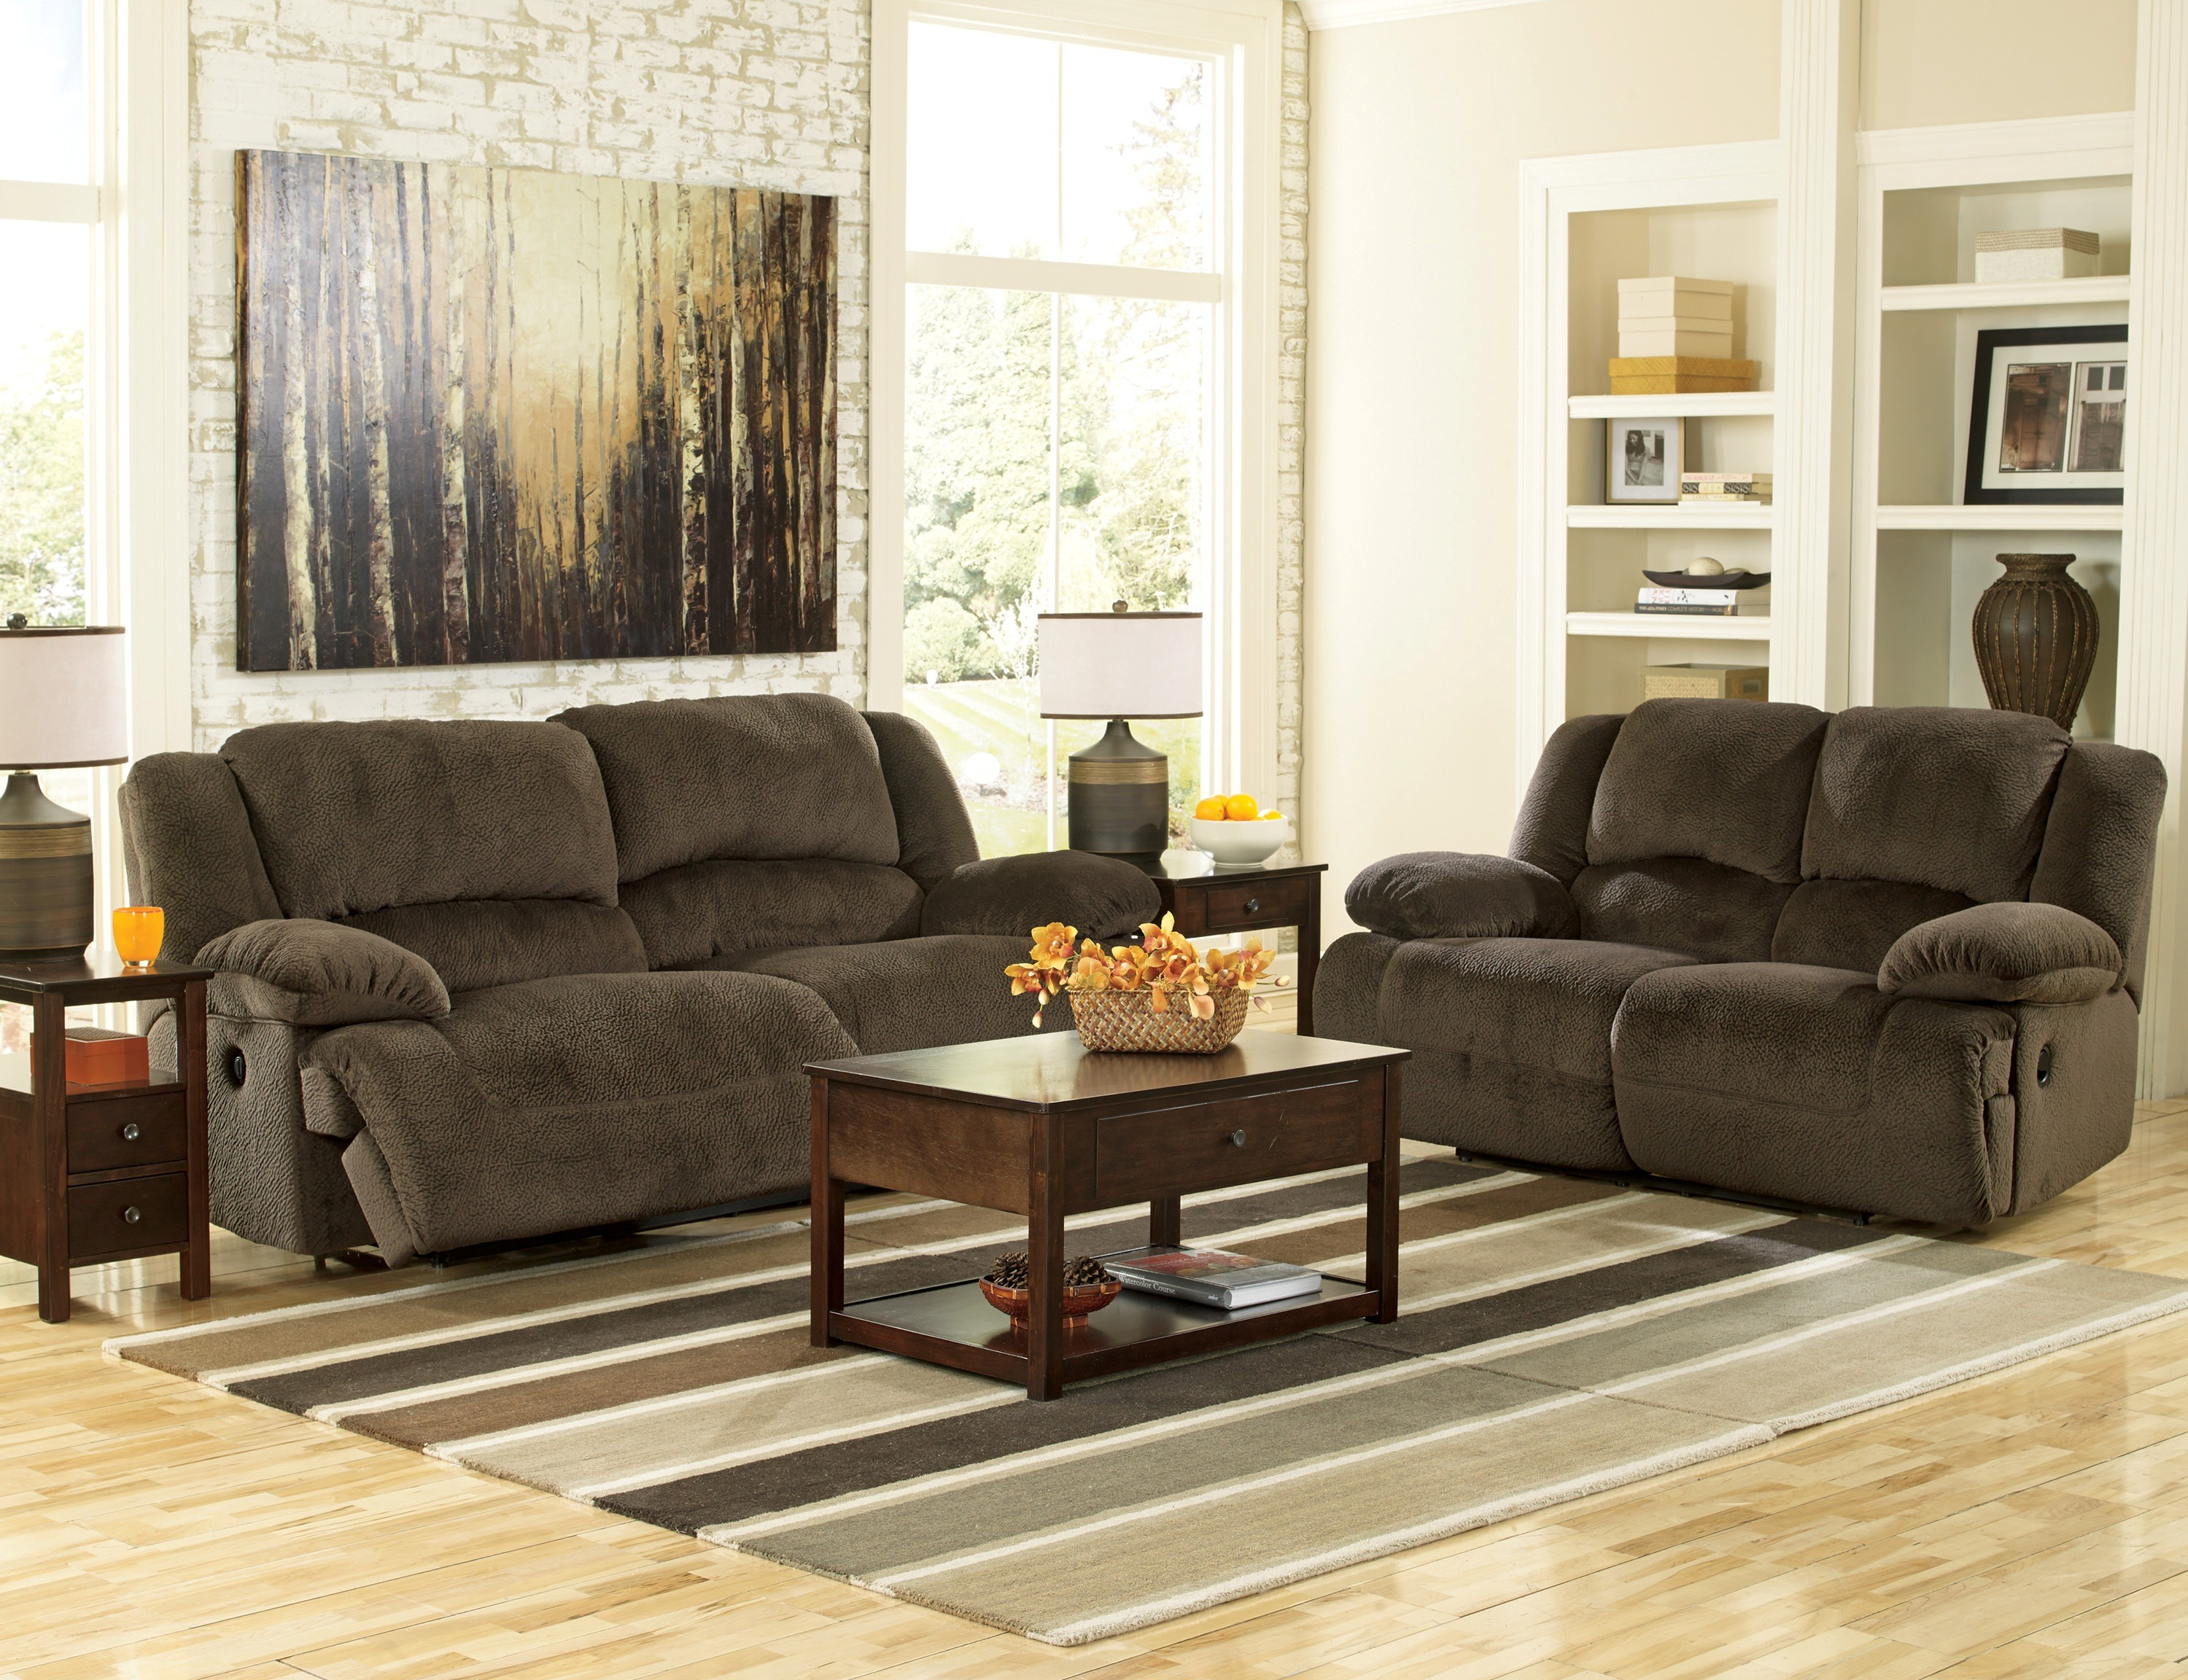 335838. Toletta Chocolate Living Room Set from Ashley  5670181 86